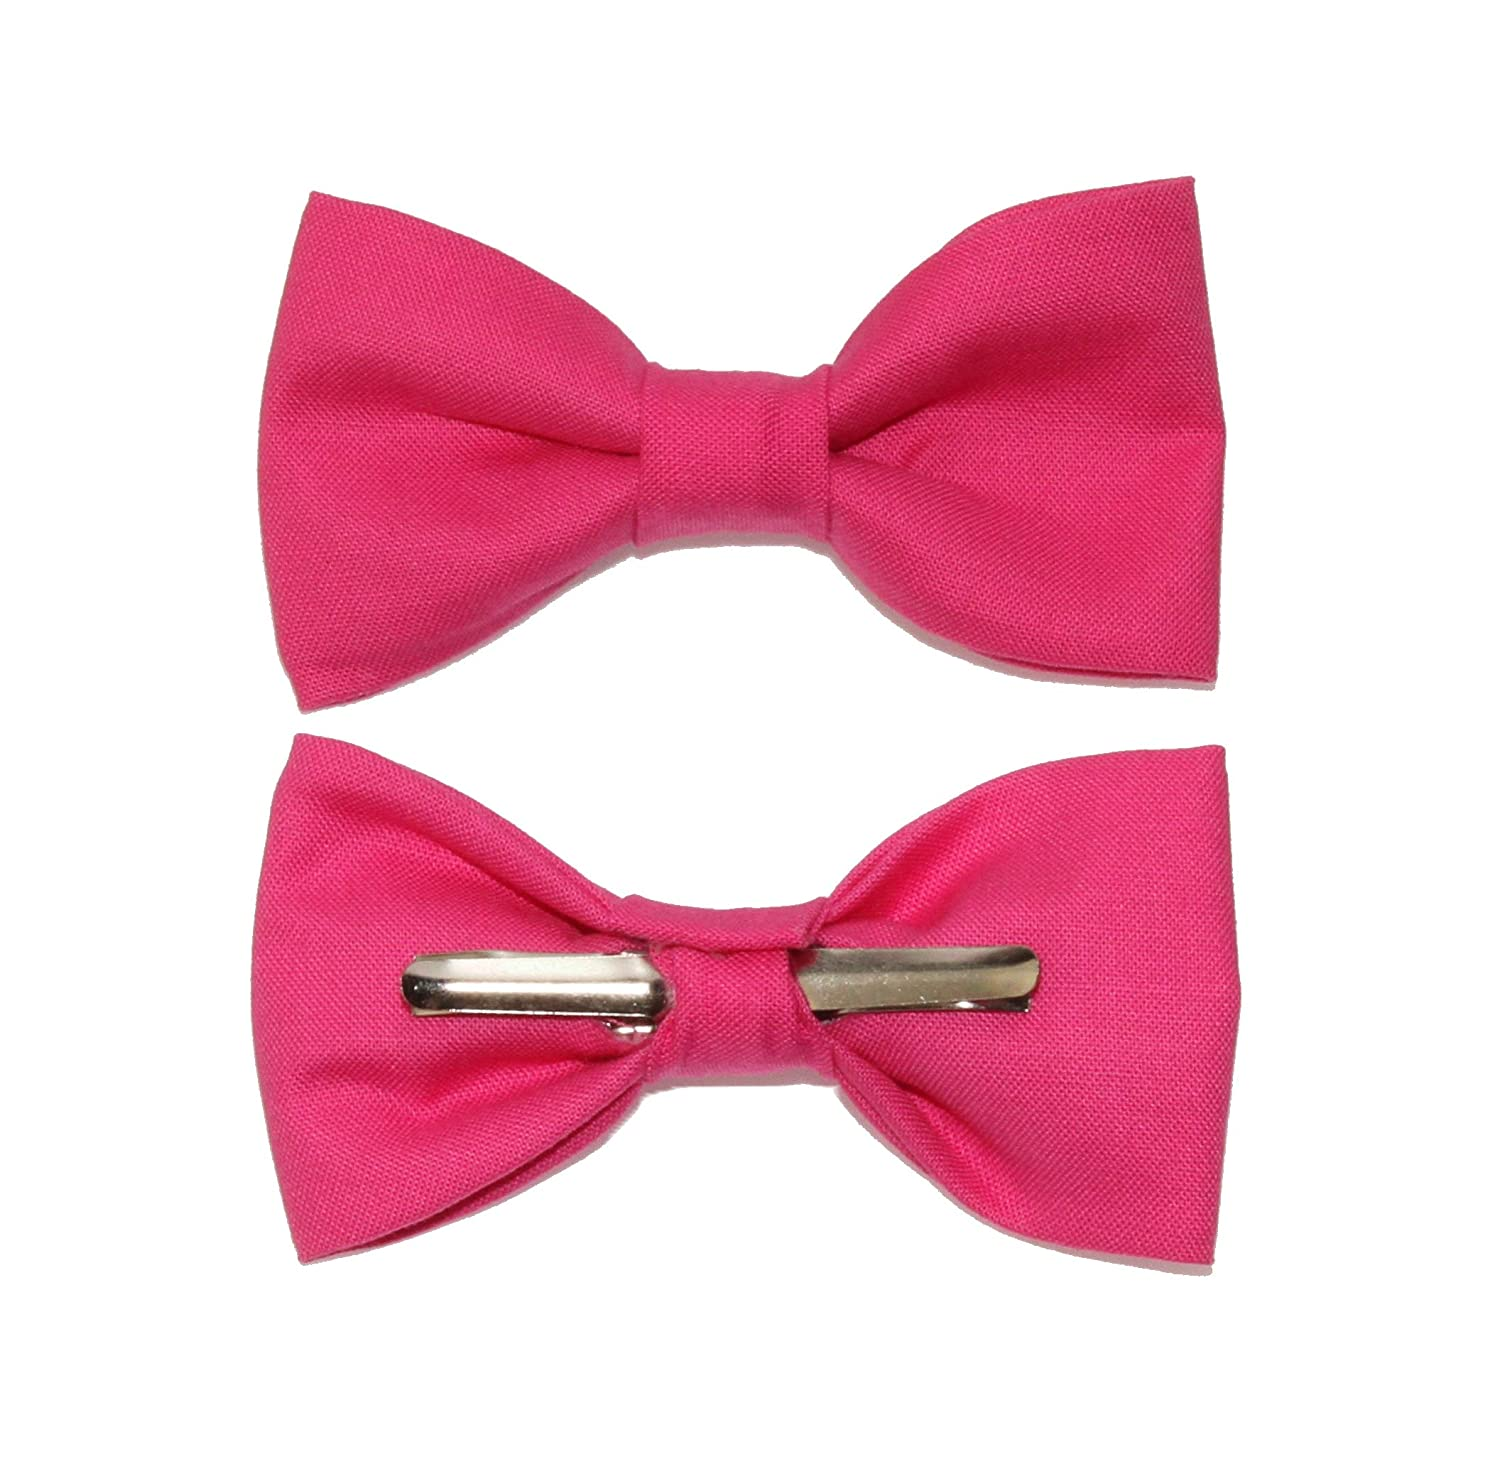 Toddler Boy 4T 5T Bright Pink Clip On Cotton Bow Tie Made In The USA